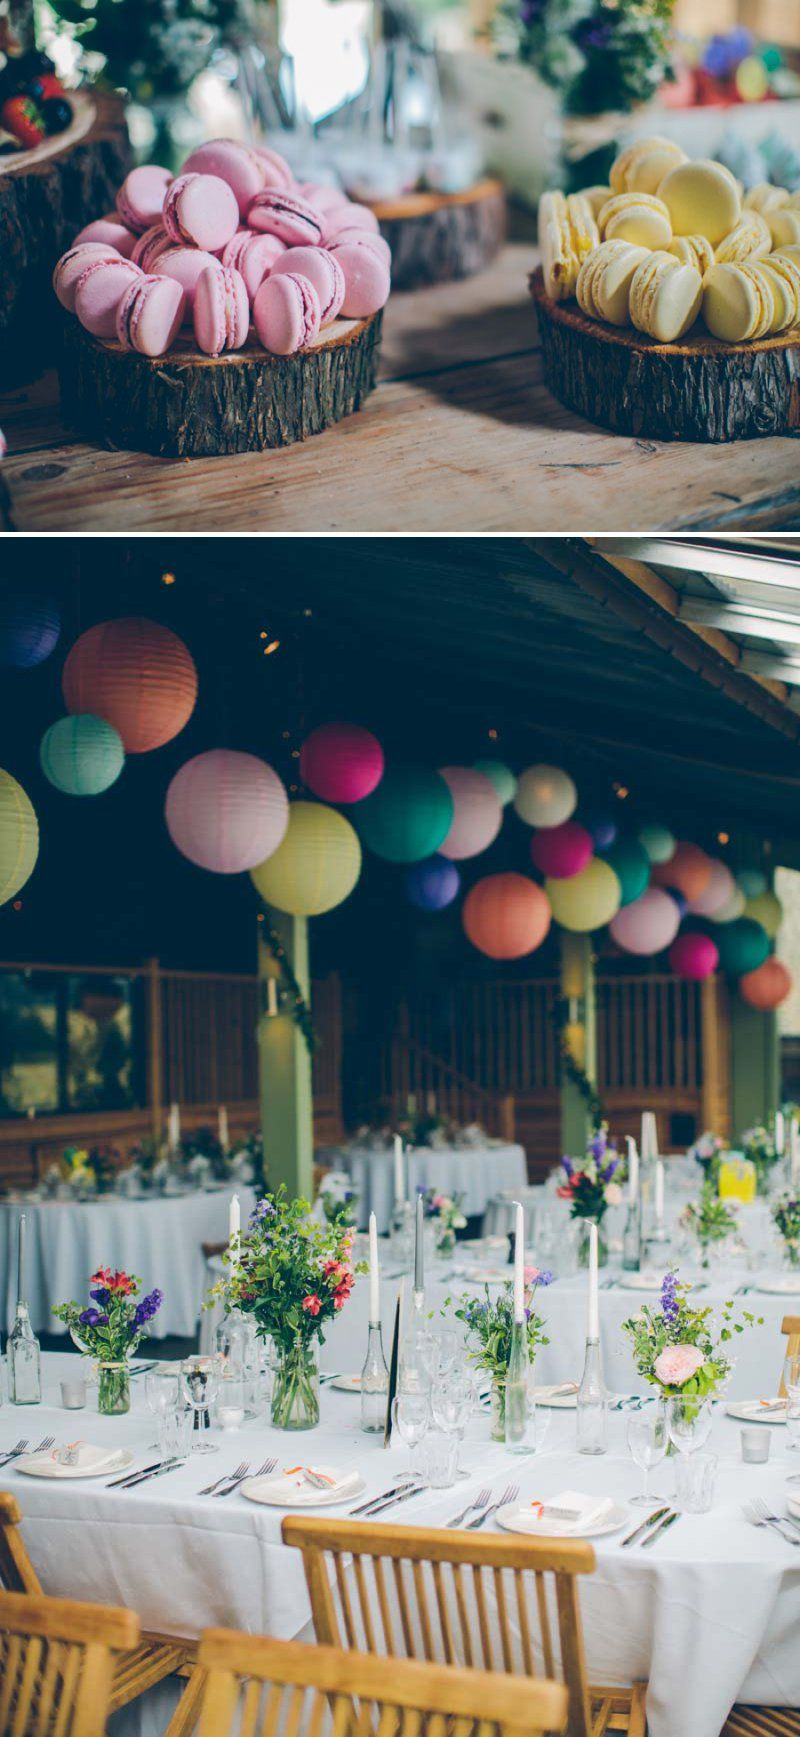 Colourful Contemporary Wedding At Cripps Stone Barn In The Cotswolds With Bride In Charlie Brear Gown And Gold Jimmy Choo Peeptoes And Groom...